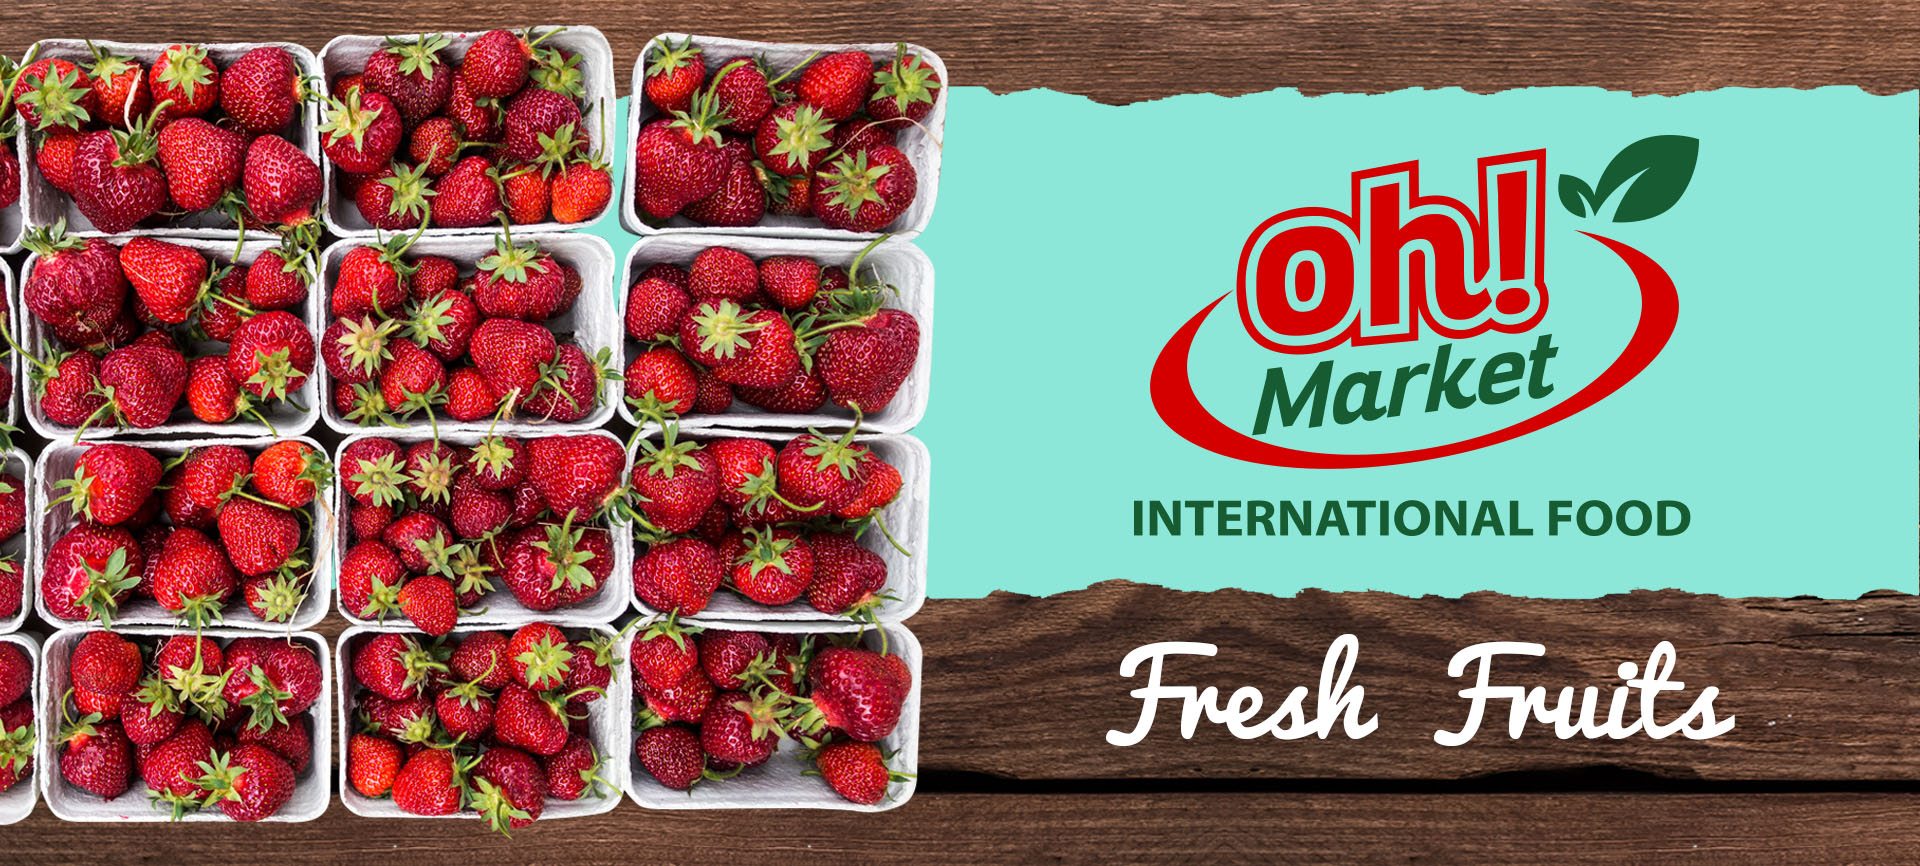 Oh! Market International Food Fruits